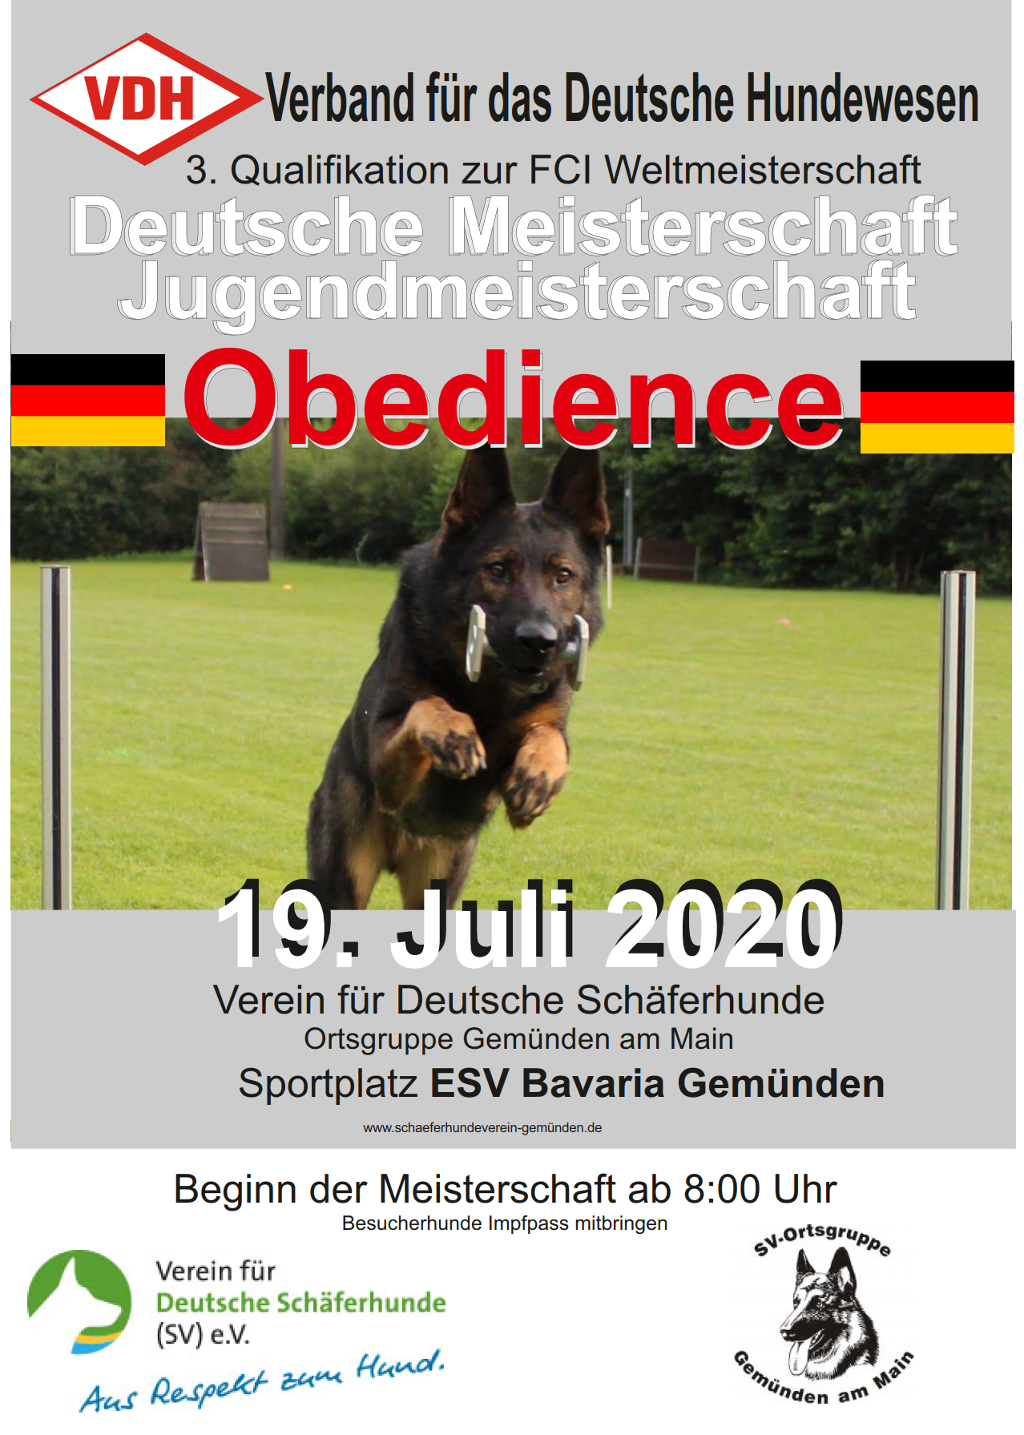 VDH DM Obedience 2020